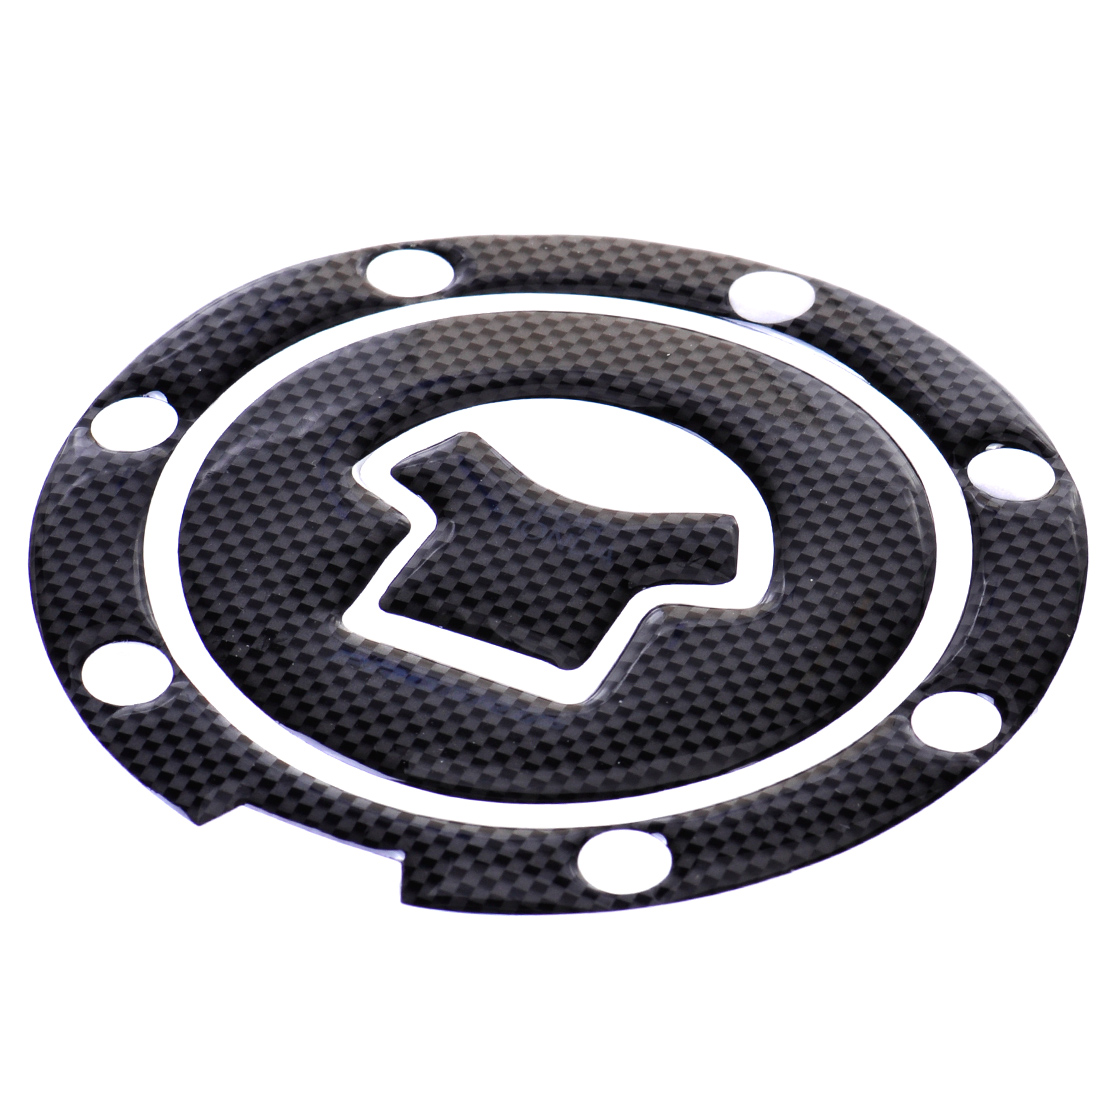 CITALL Motorcycle Fuel Oil Gas Cap Tank Cover Pad Decal Protector Sticker For Honda CBR600RR CB650 CB900F CBR250R Magna 700